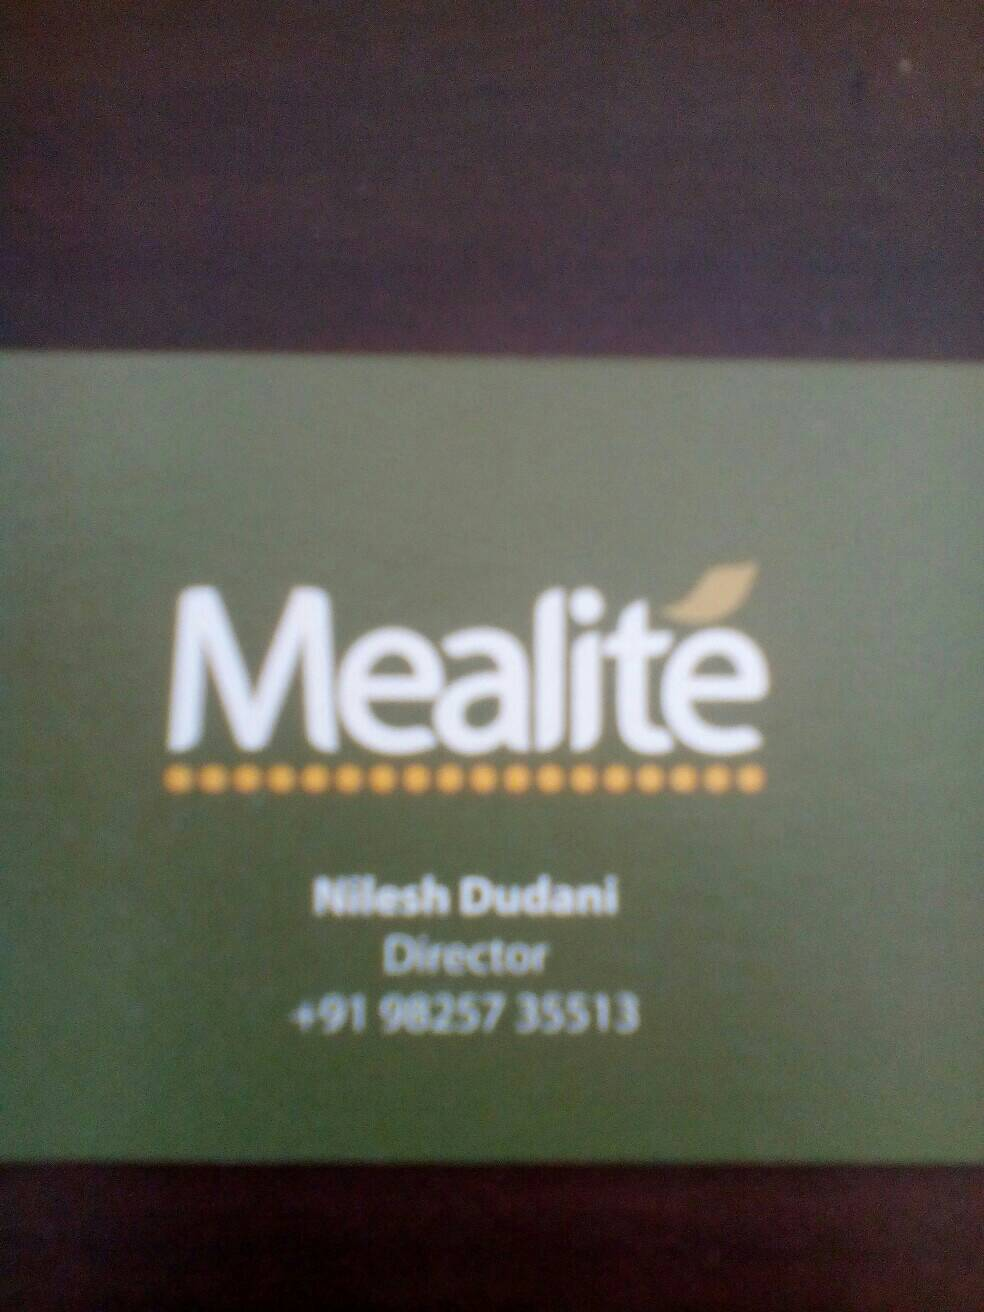 Mealite Food Pvt Ltd